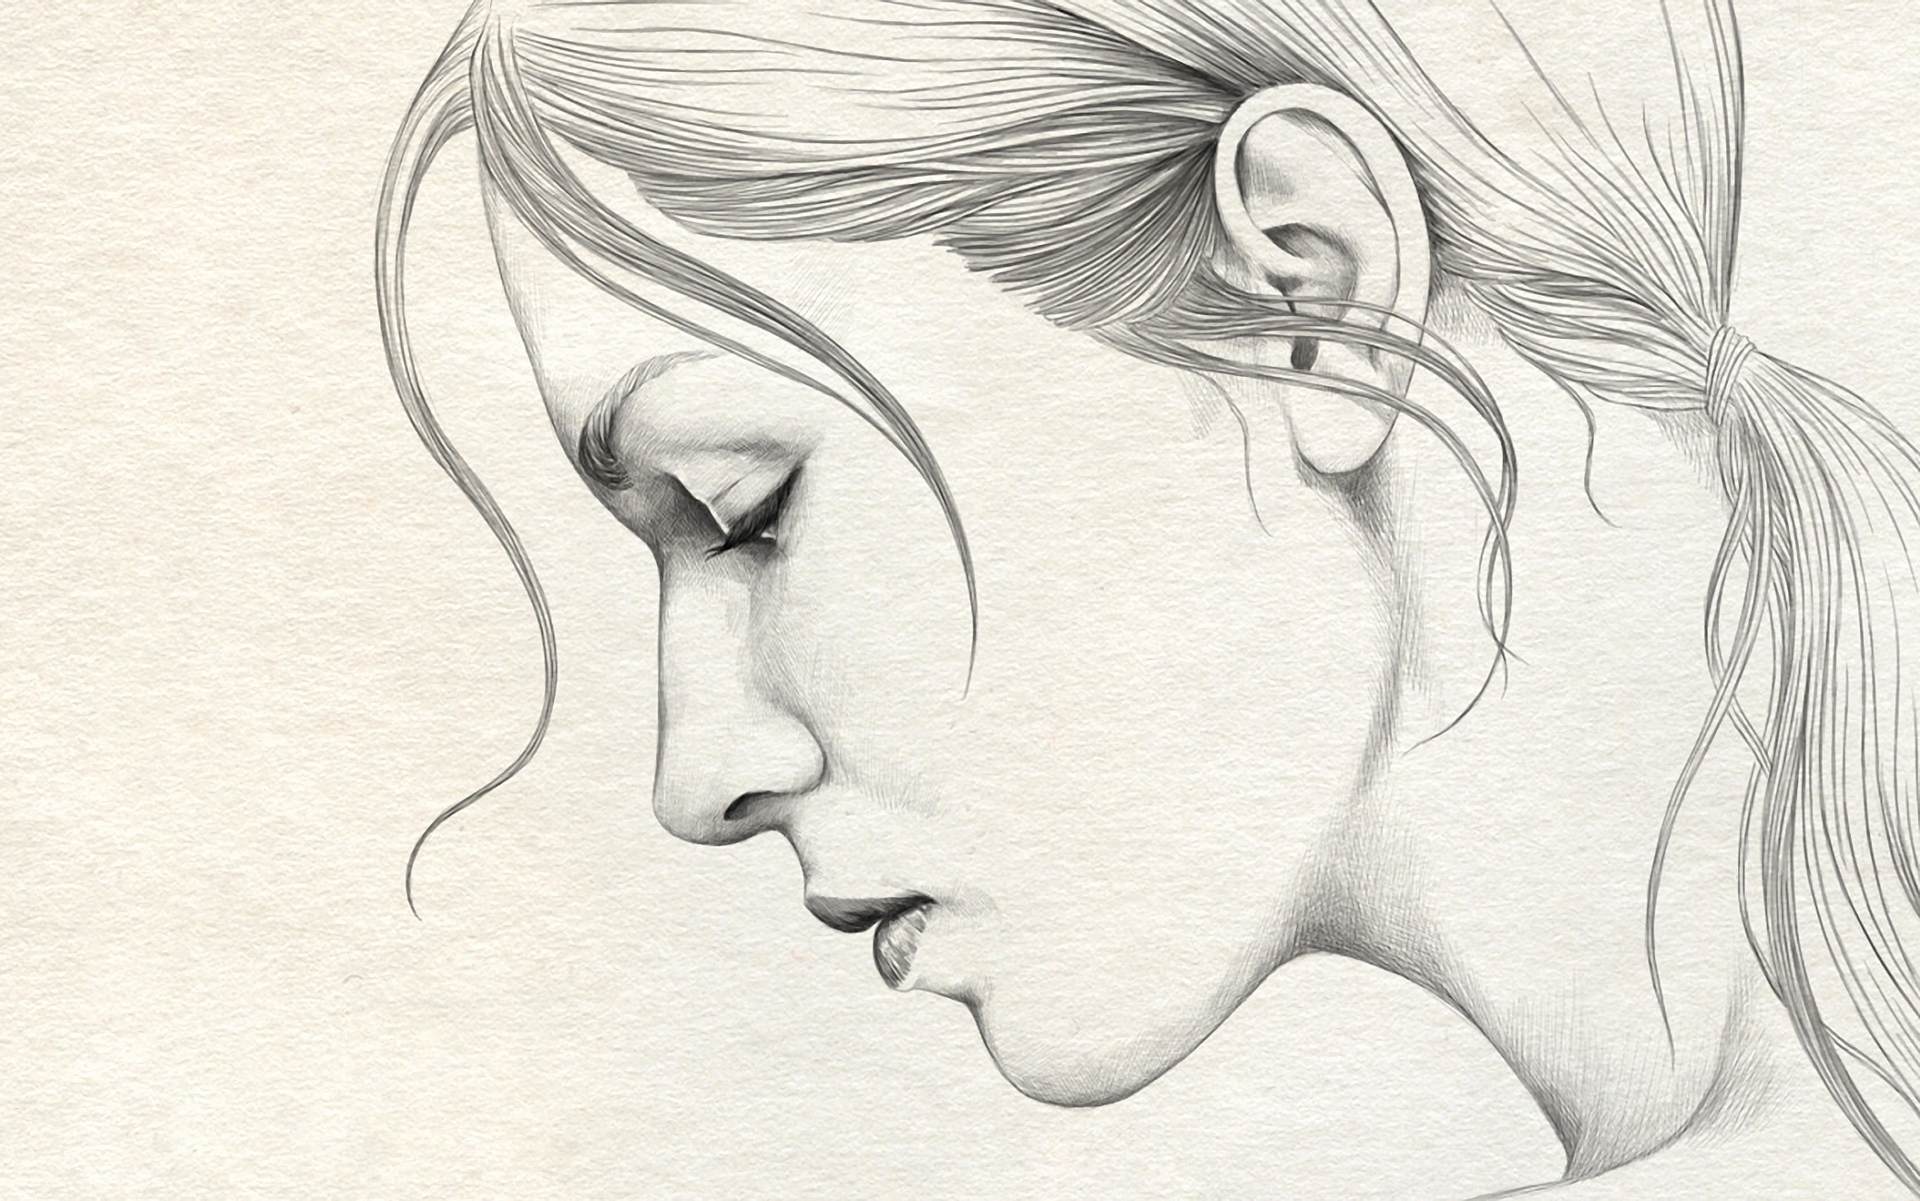 1920x1201 3d Pencil Drawing Wallpaper Girl Pencil Sketch 3d Pencil Sketch - Sad Girl Sketch